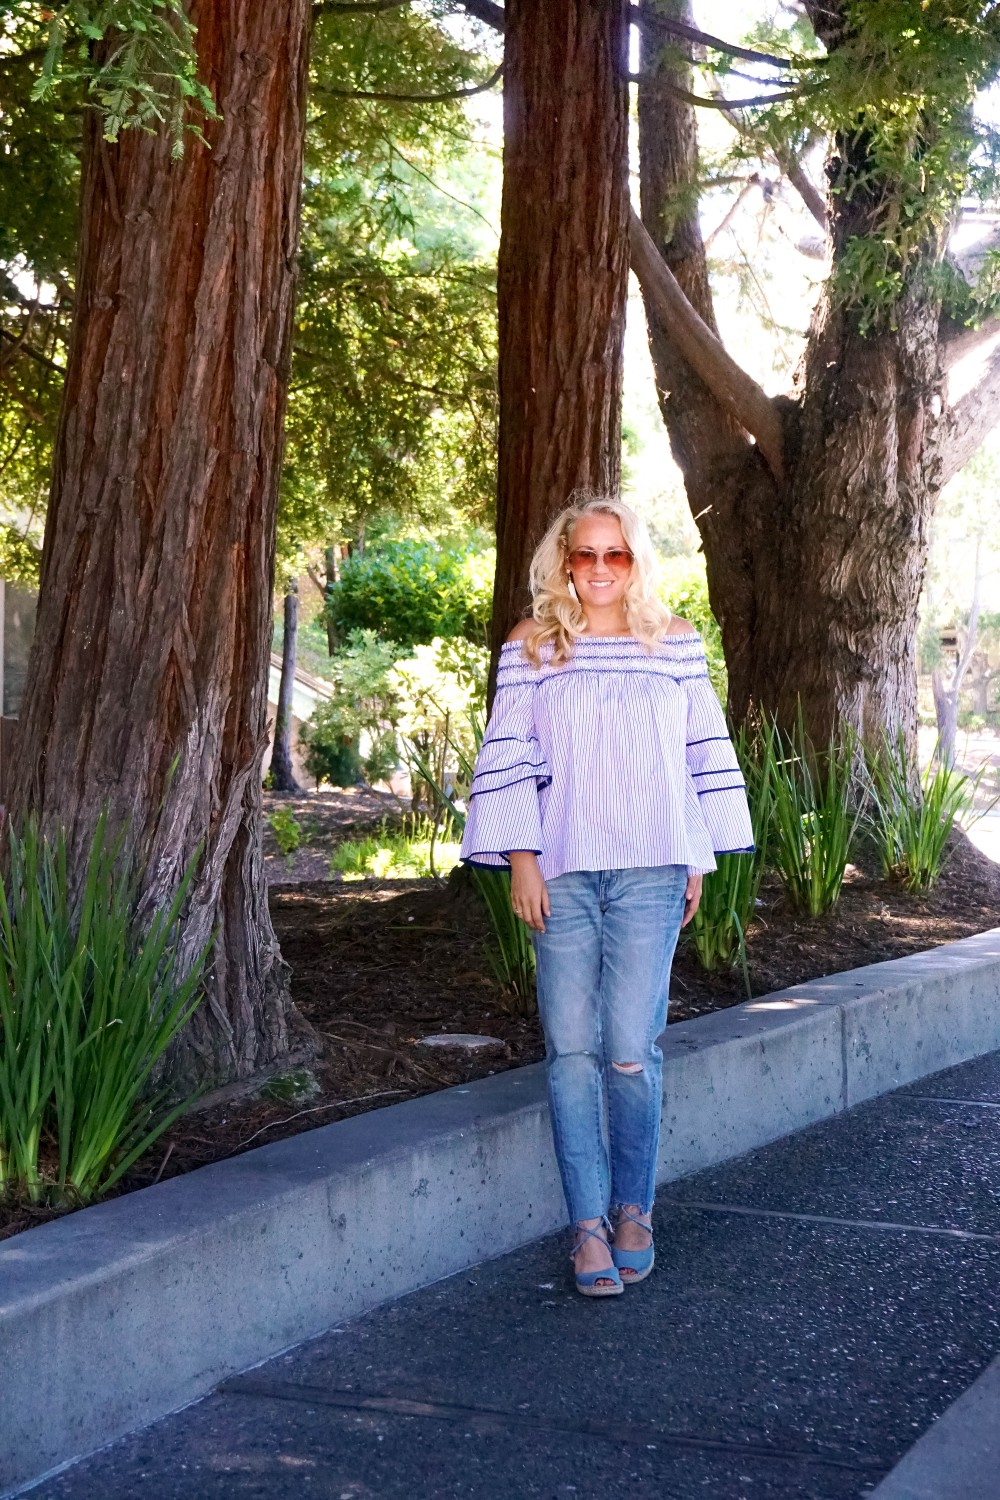 Striped Off-The-Shoulder Poplin Blouse-Parker New York-Summer Style-Outfit Inspiration-Have Need Want-Skinny Boyfriend Jeans-Espadrille Wedges